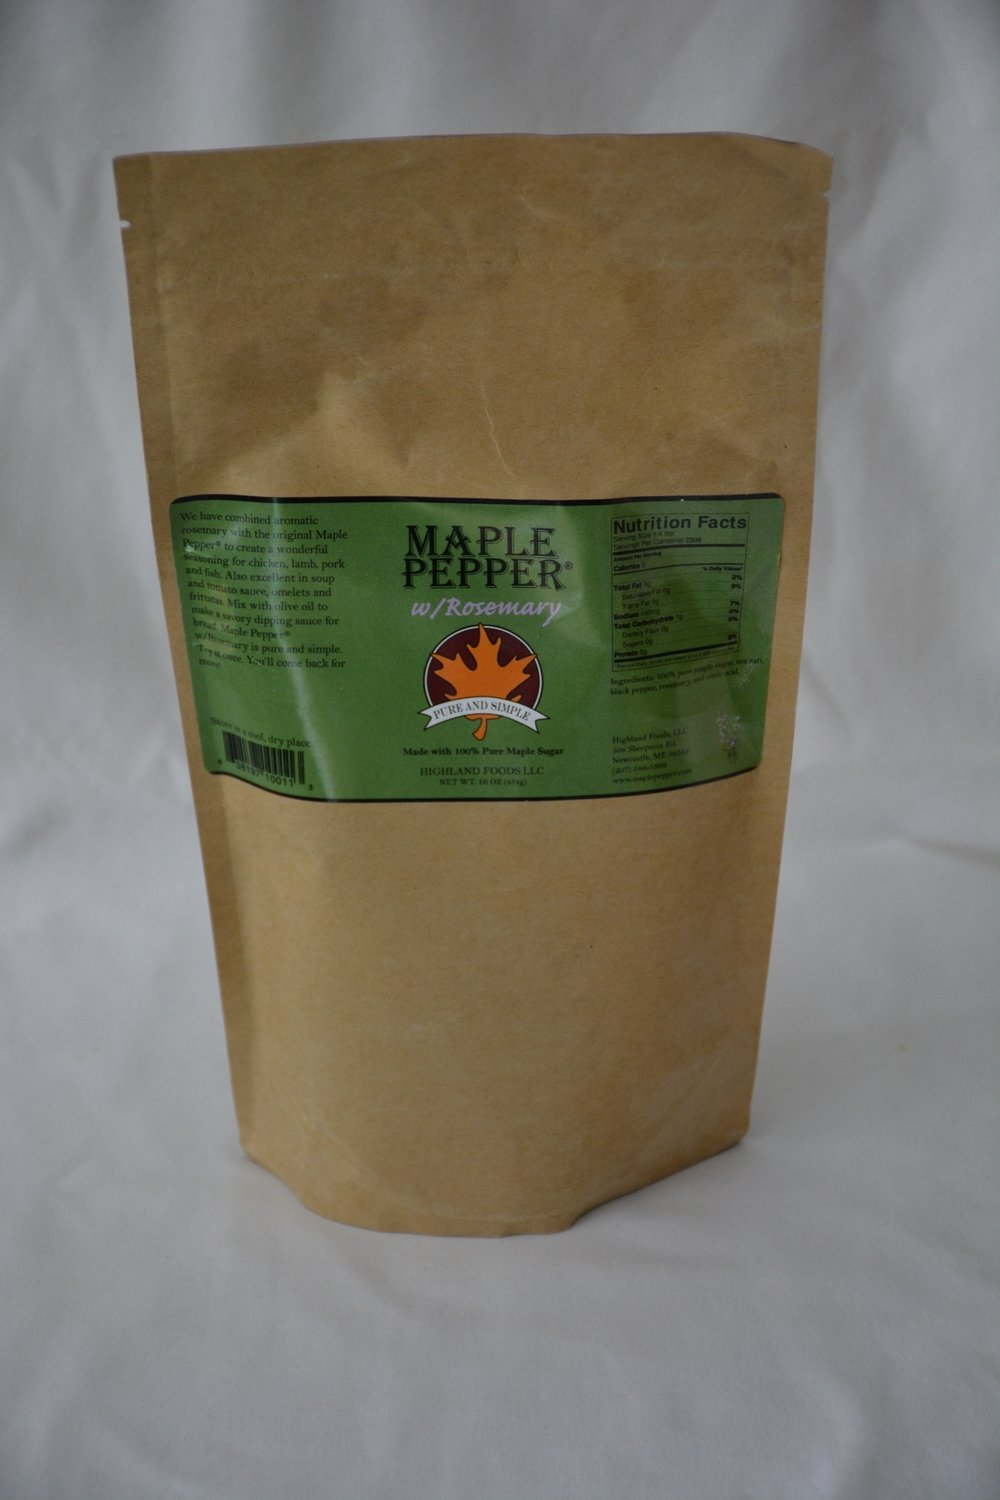 Maple Pepper® w/Rosemary: 1 lb. bag